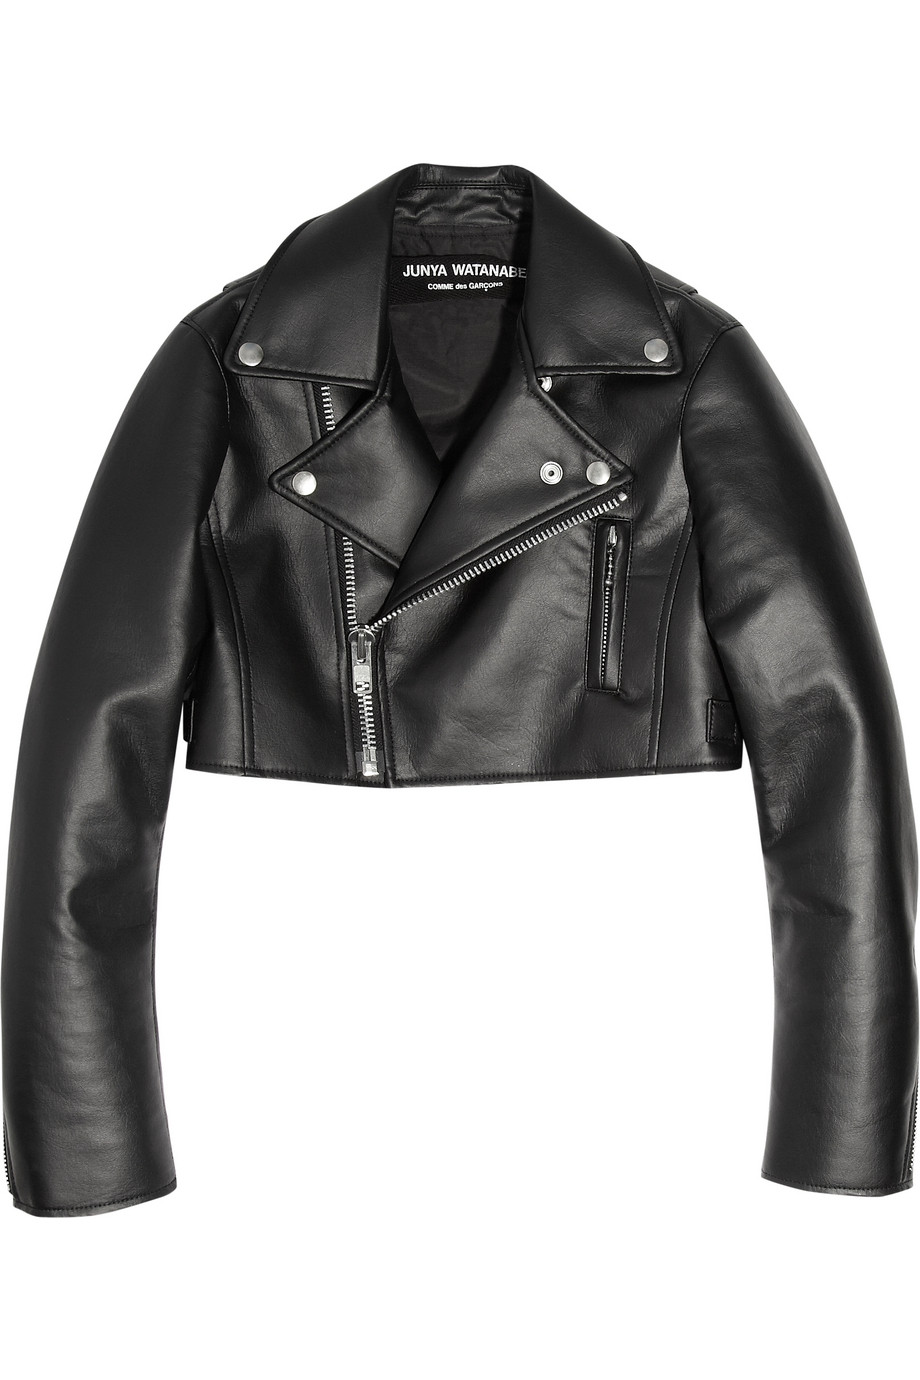 Go all hell for leather! Our faux leather jackets are a knockout wardrobe piece no fashion baller should be without. From rock chick biker styles for kickin' it on the streets or shakin' it at a gig, to slick and sleek tailored blazers savvy enough to take you from work to the bar and on to the club.